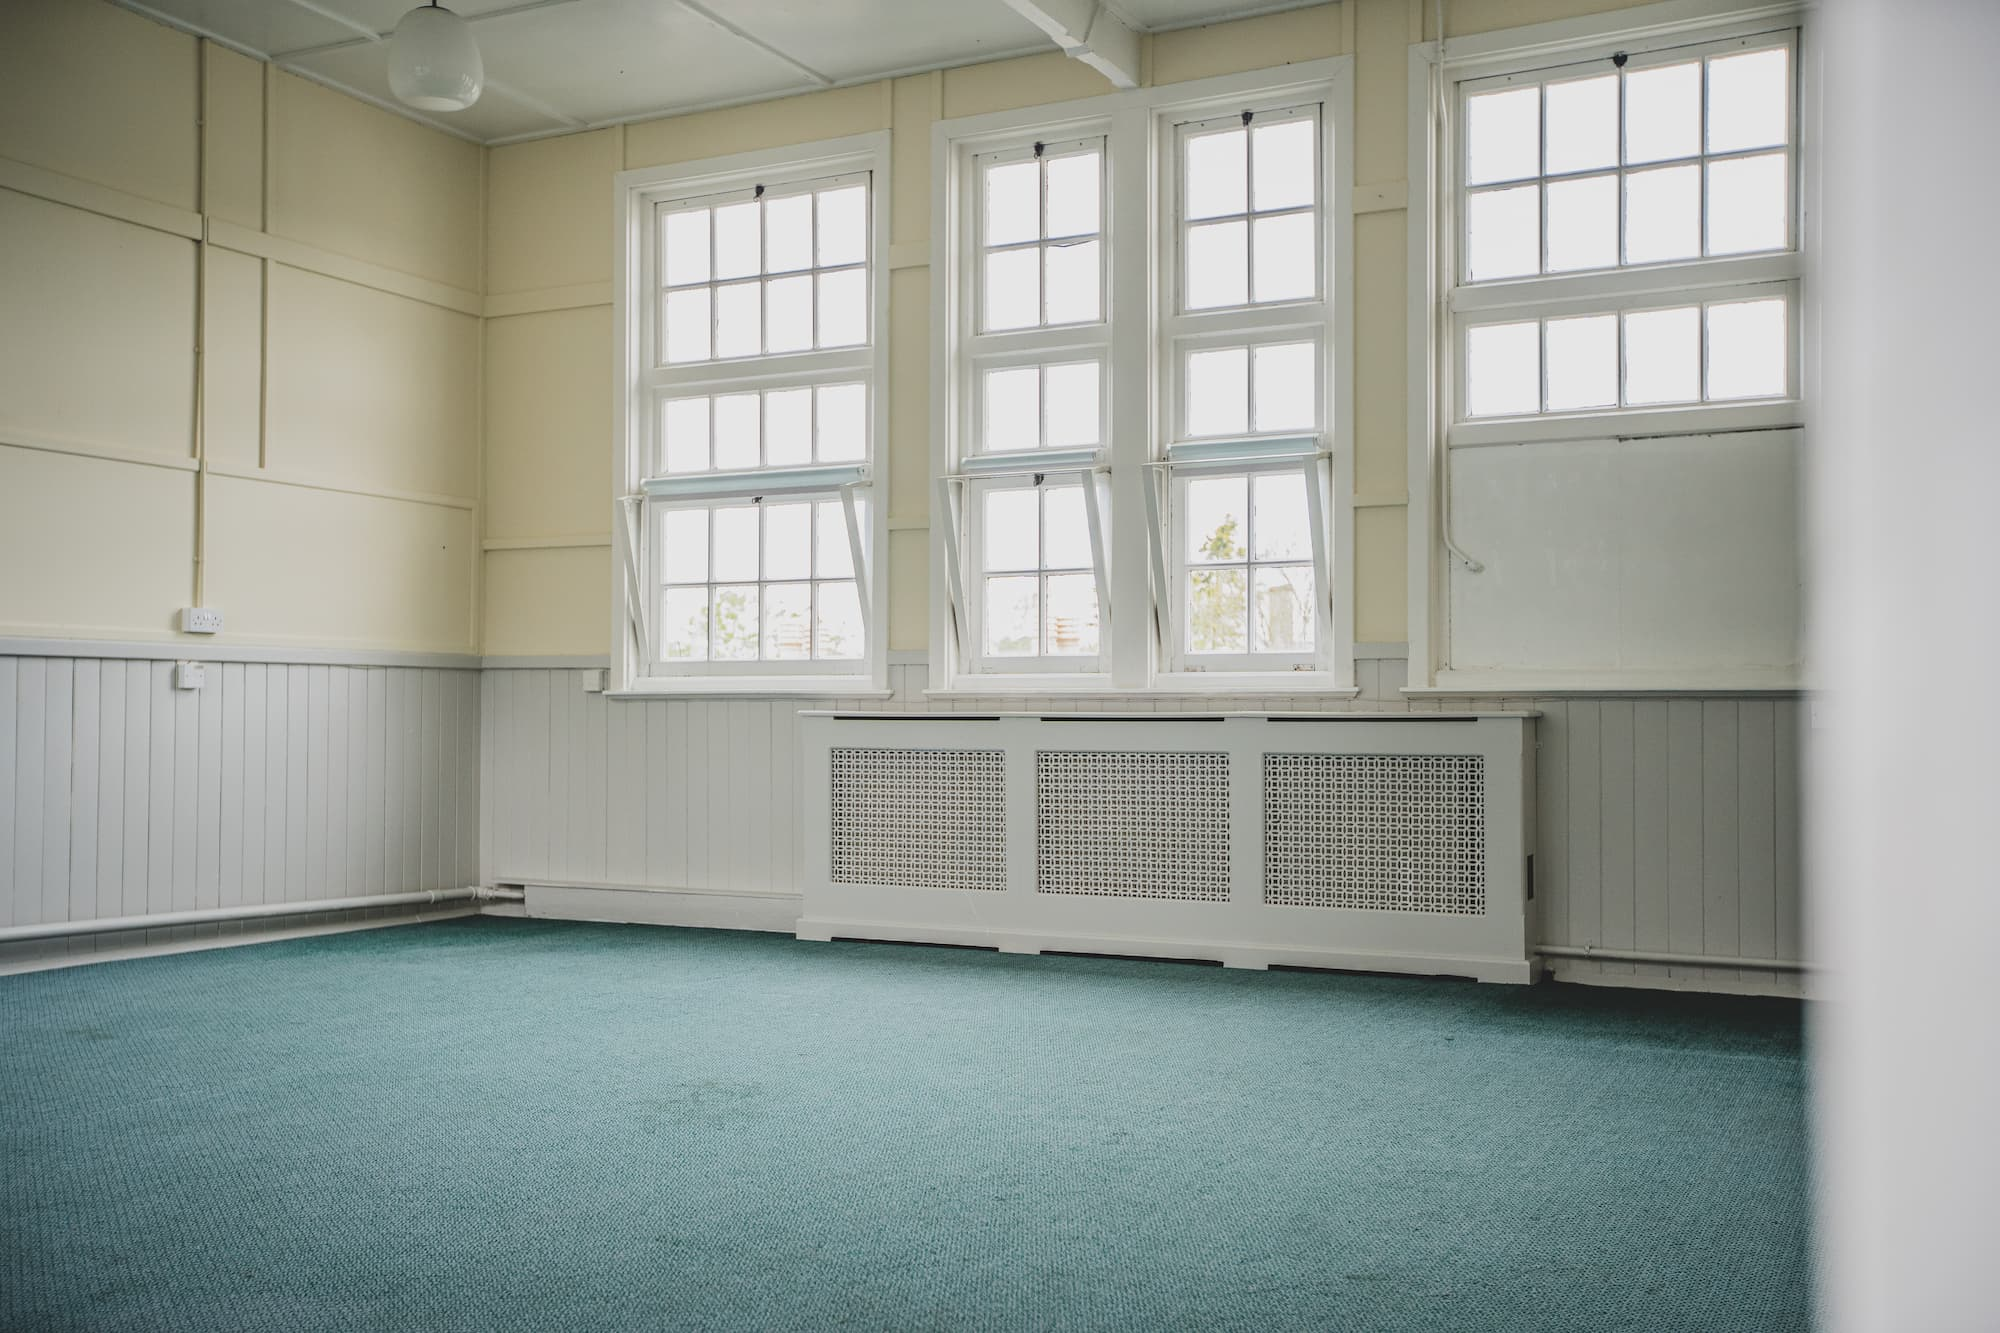 A view of the set of large windows in the work room with a long, covered radiator underneath them.